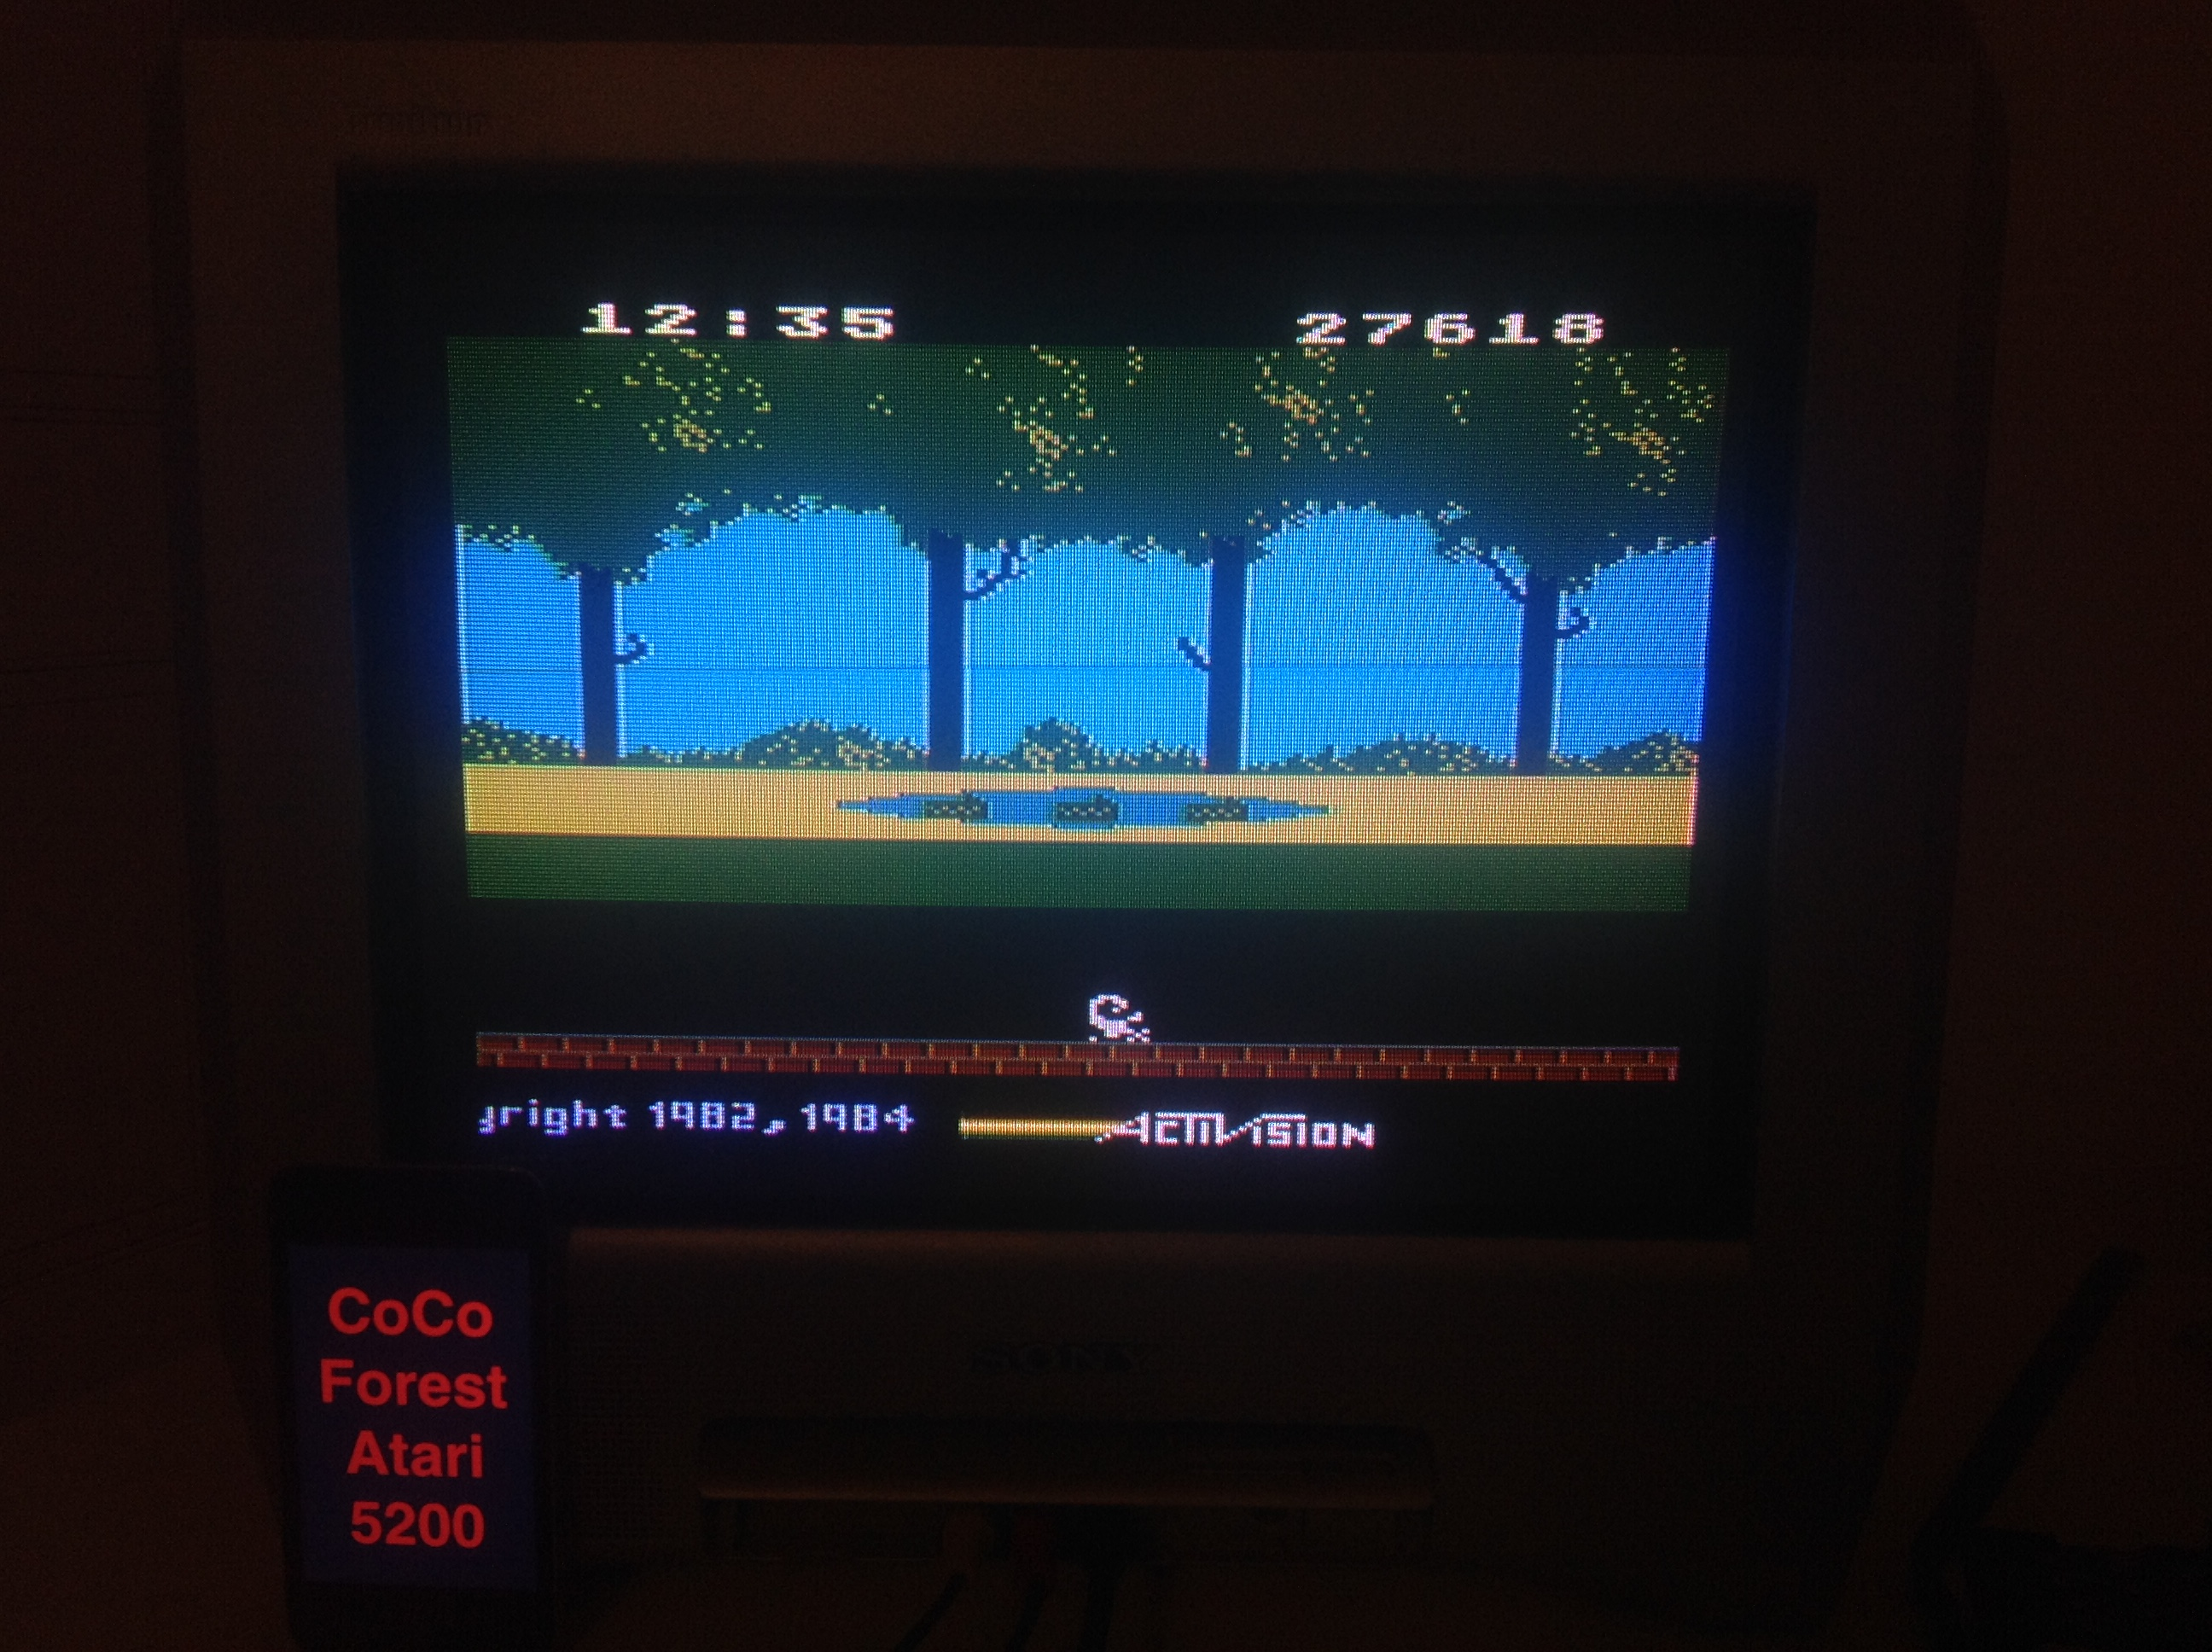 CoCoForest: Pitfall (Atari 5200) 27,618 points on 2015-11-16 12:02:15